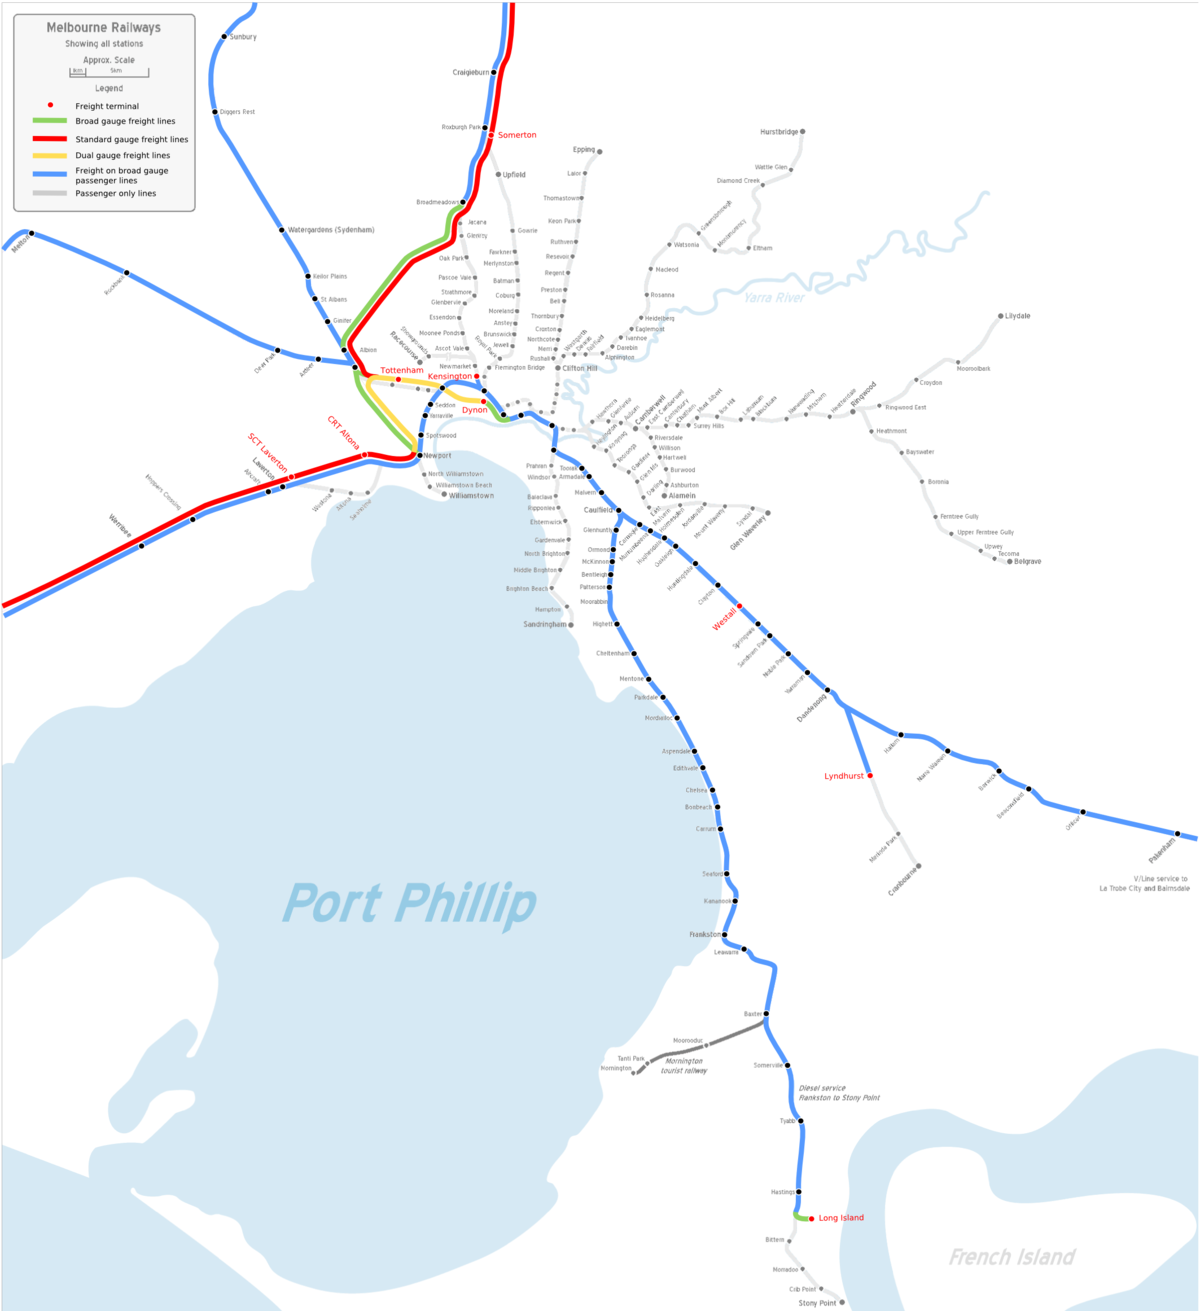 Newport–Sunshine railway line - Wikipedia